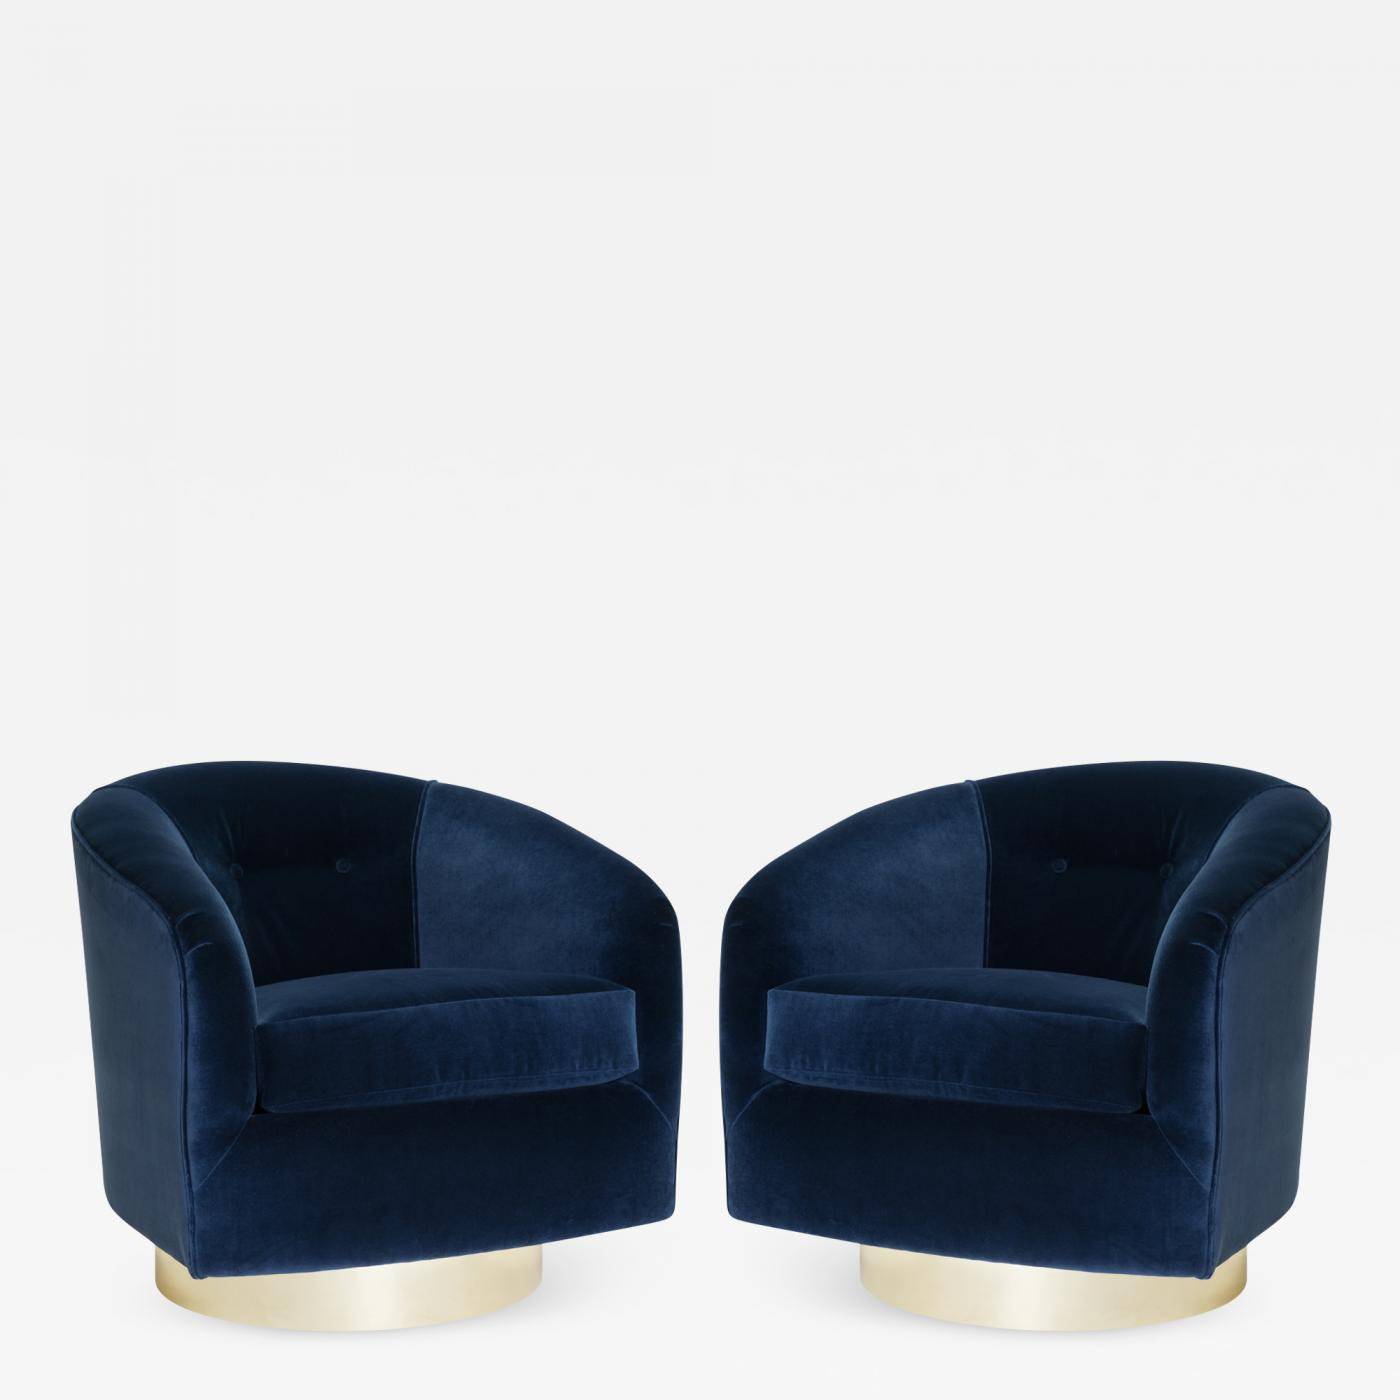 Tub Chairs Swivel Tub Chairs In Navy Velvet With Polished Brass Bases Pair